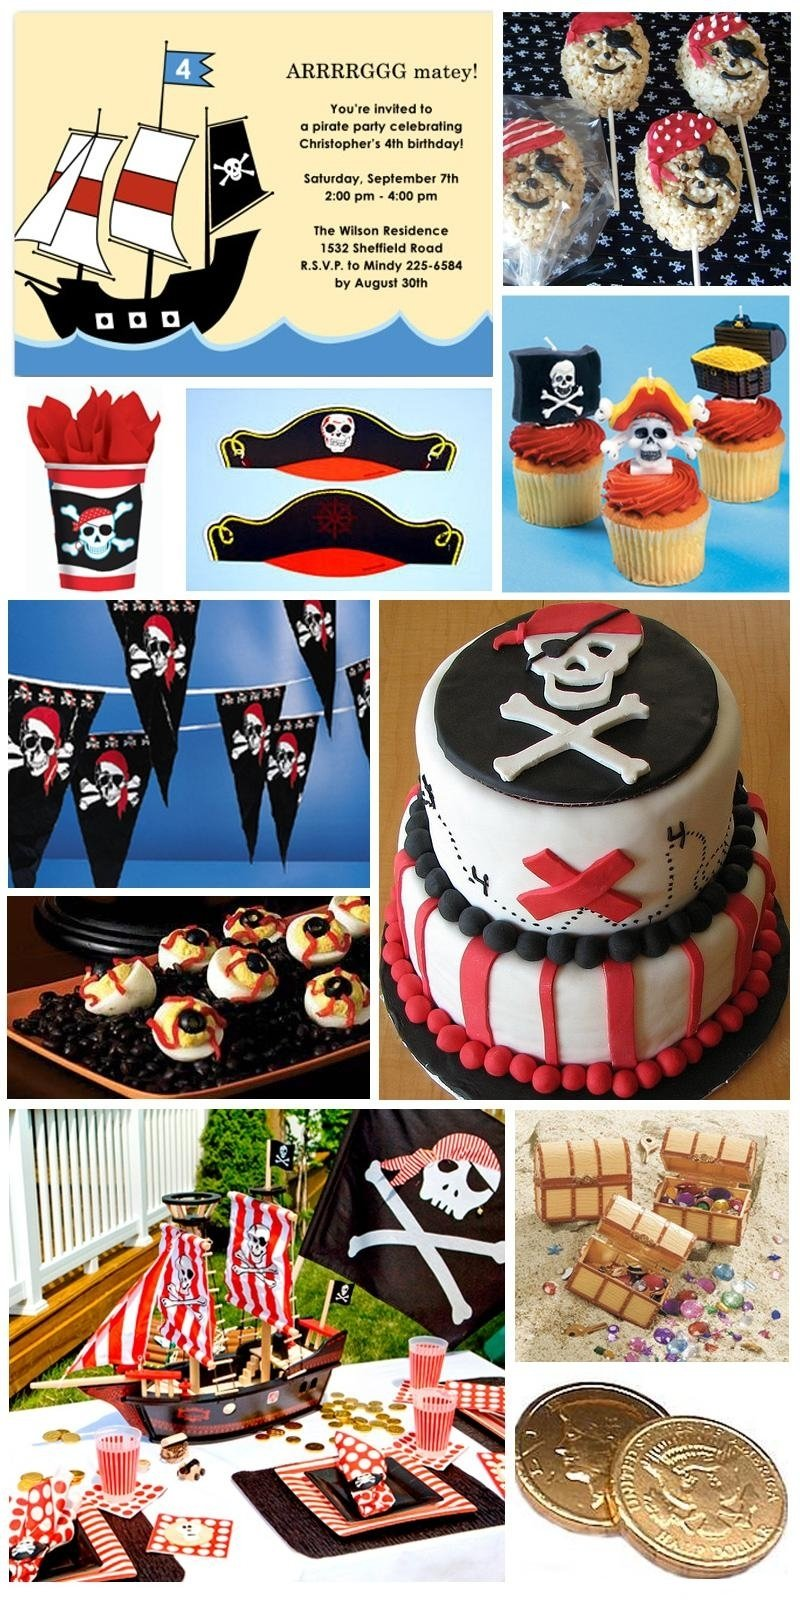 inspiration board: pirate birthday party theme | pirate birthday